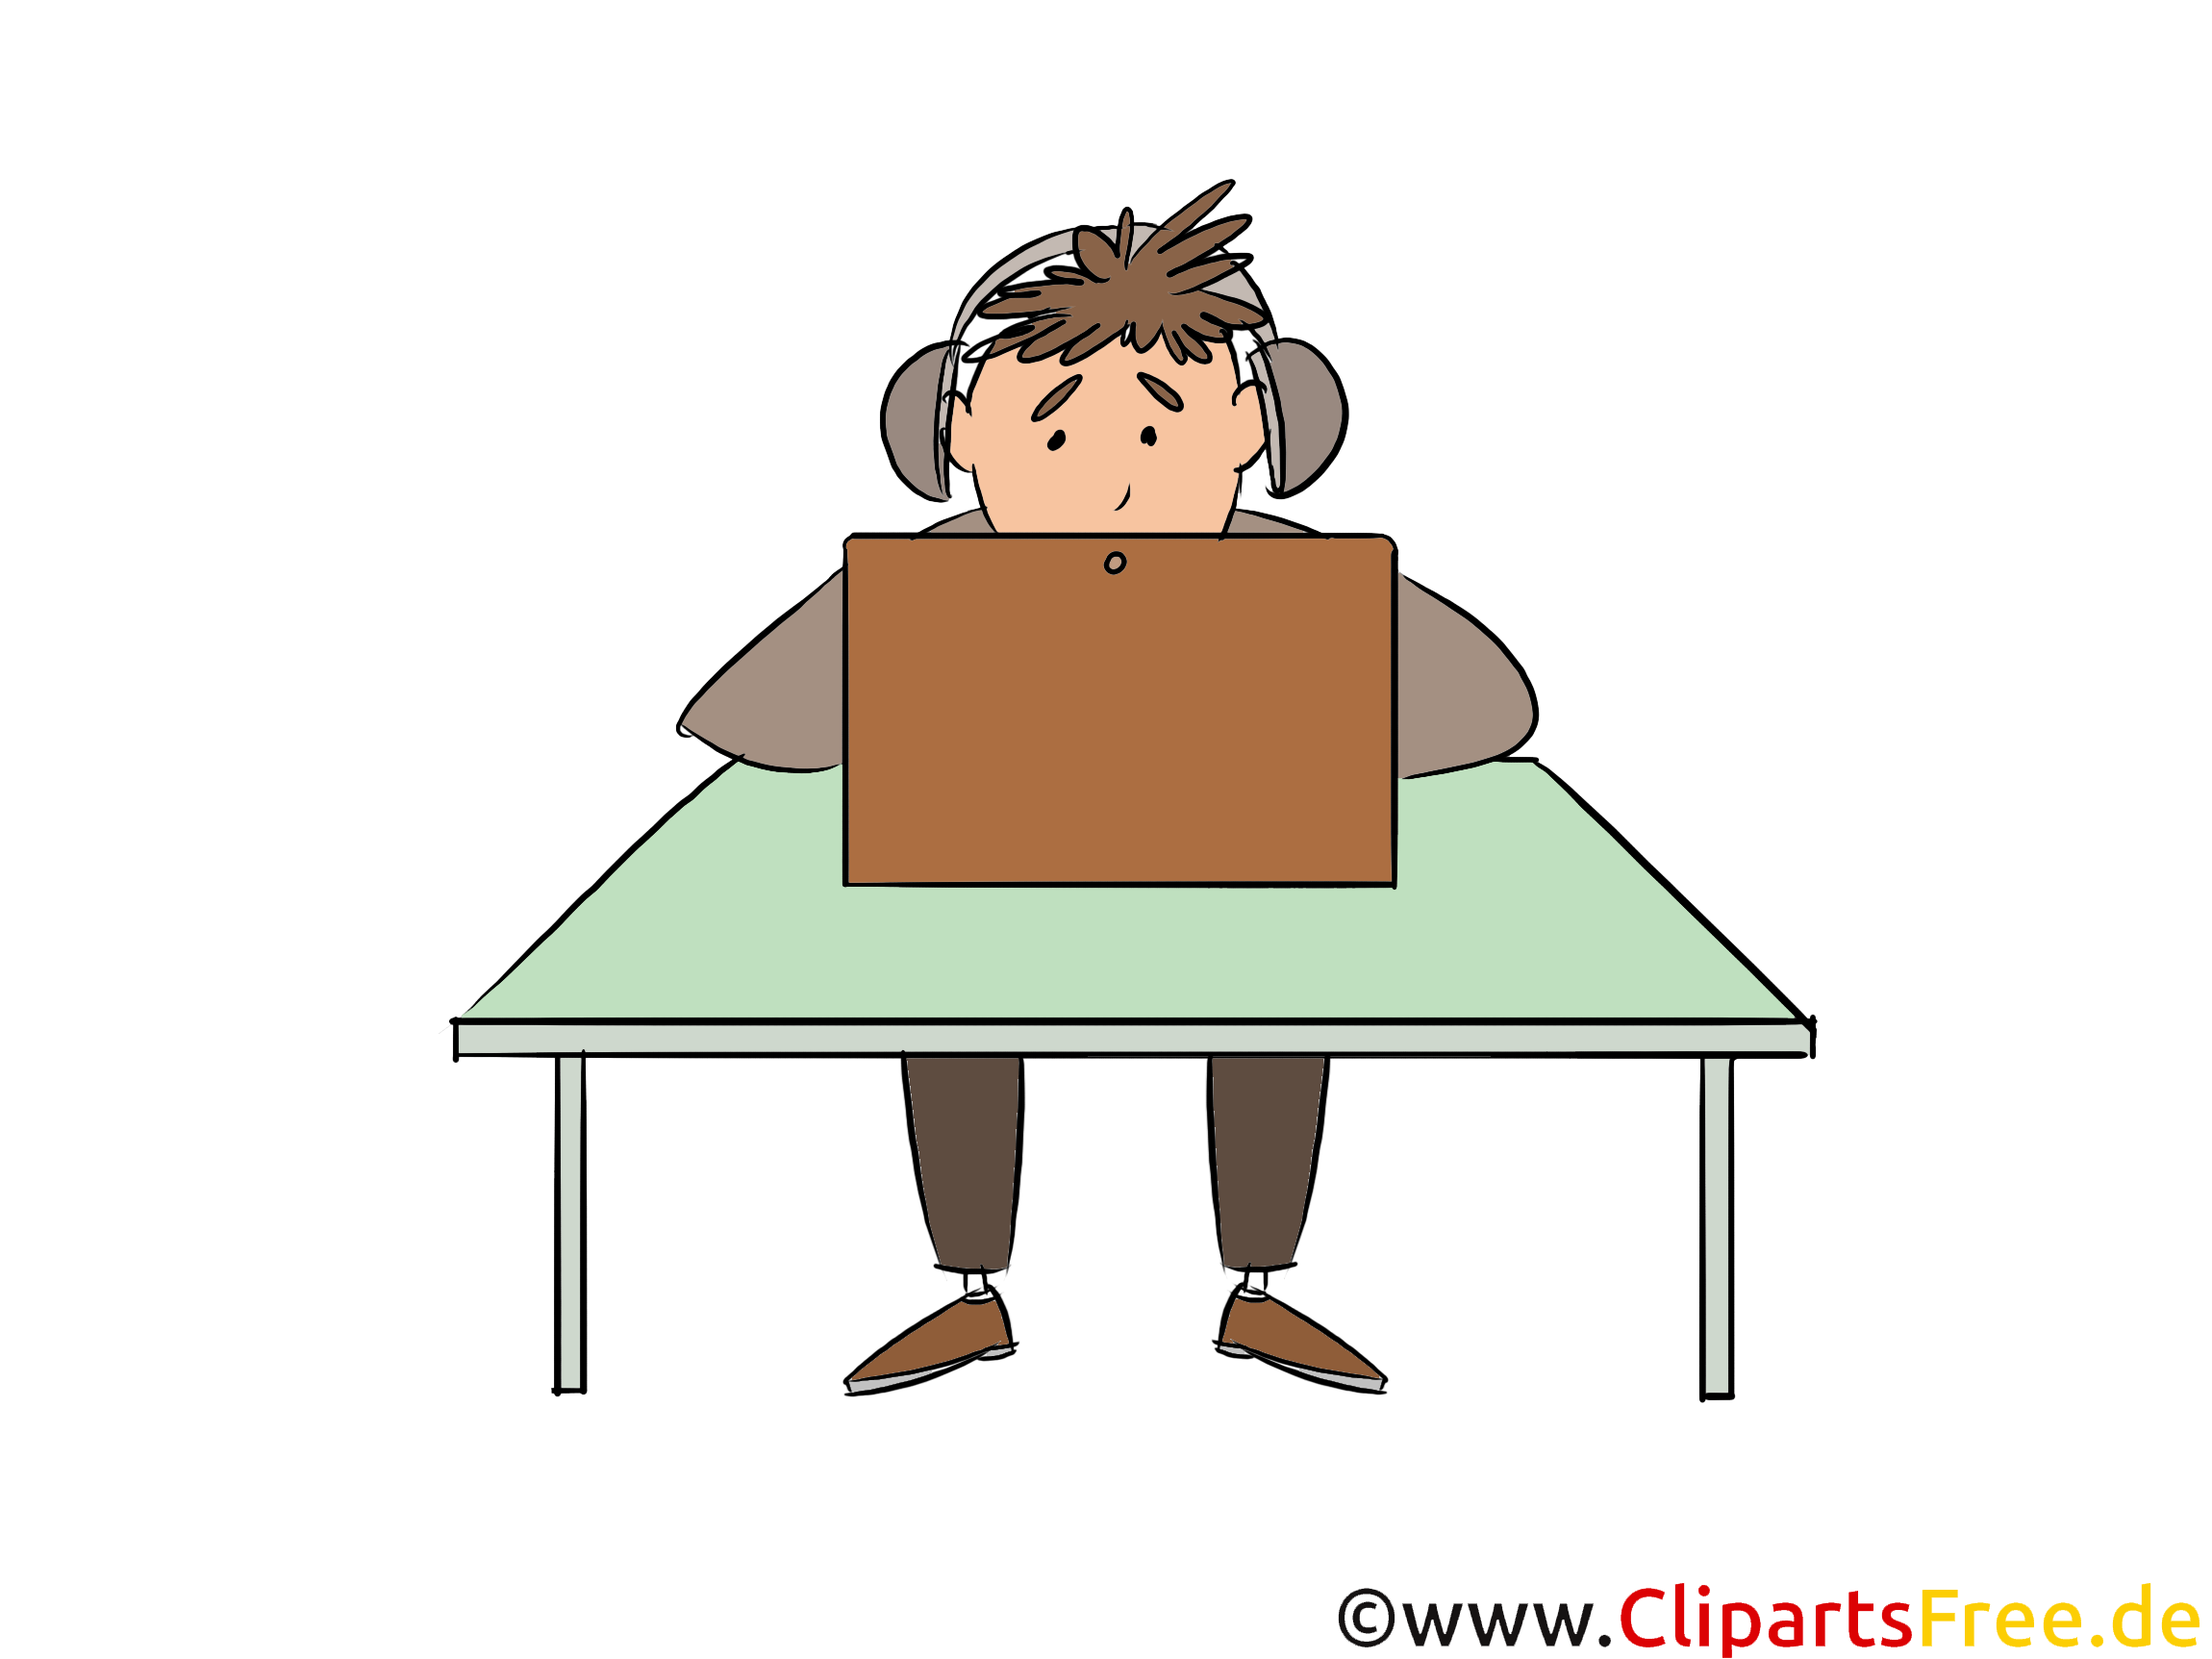 Student chattet im Internet Clipart, Bild, Illustration